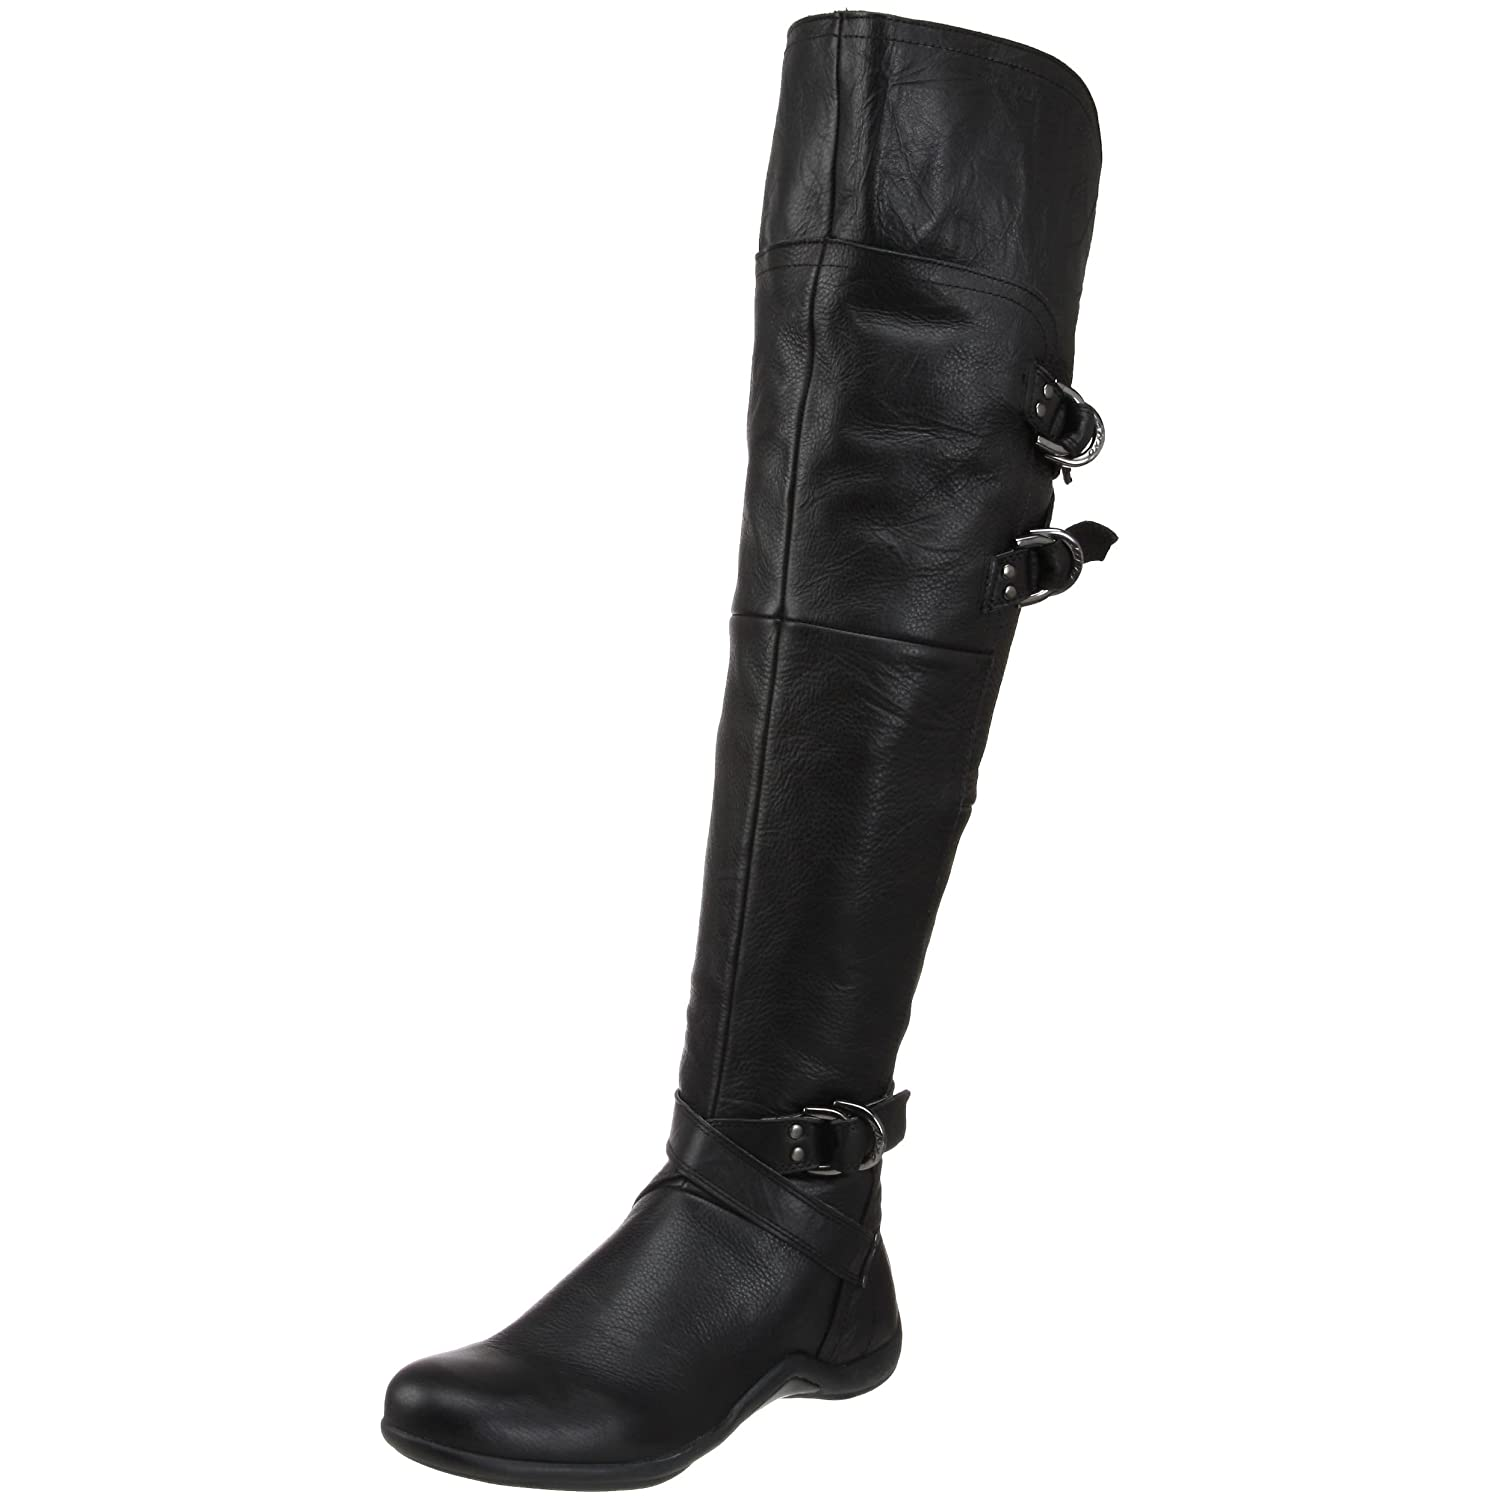 DKNY - Women's Audrey Over-the-Knee Boot